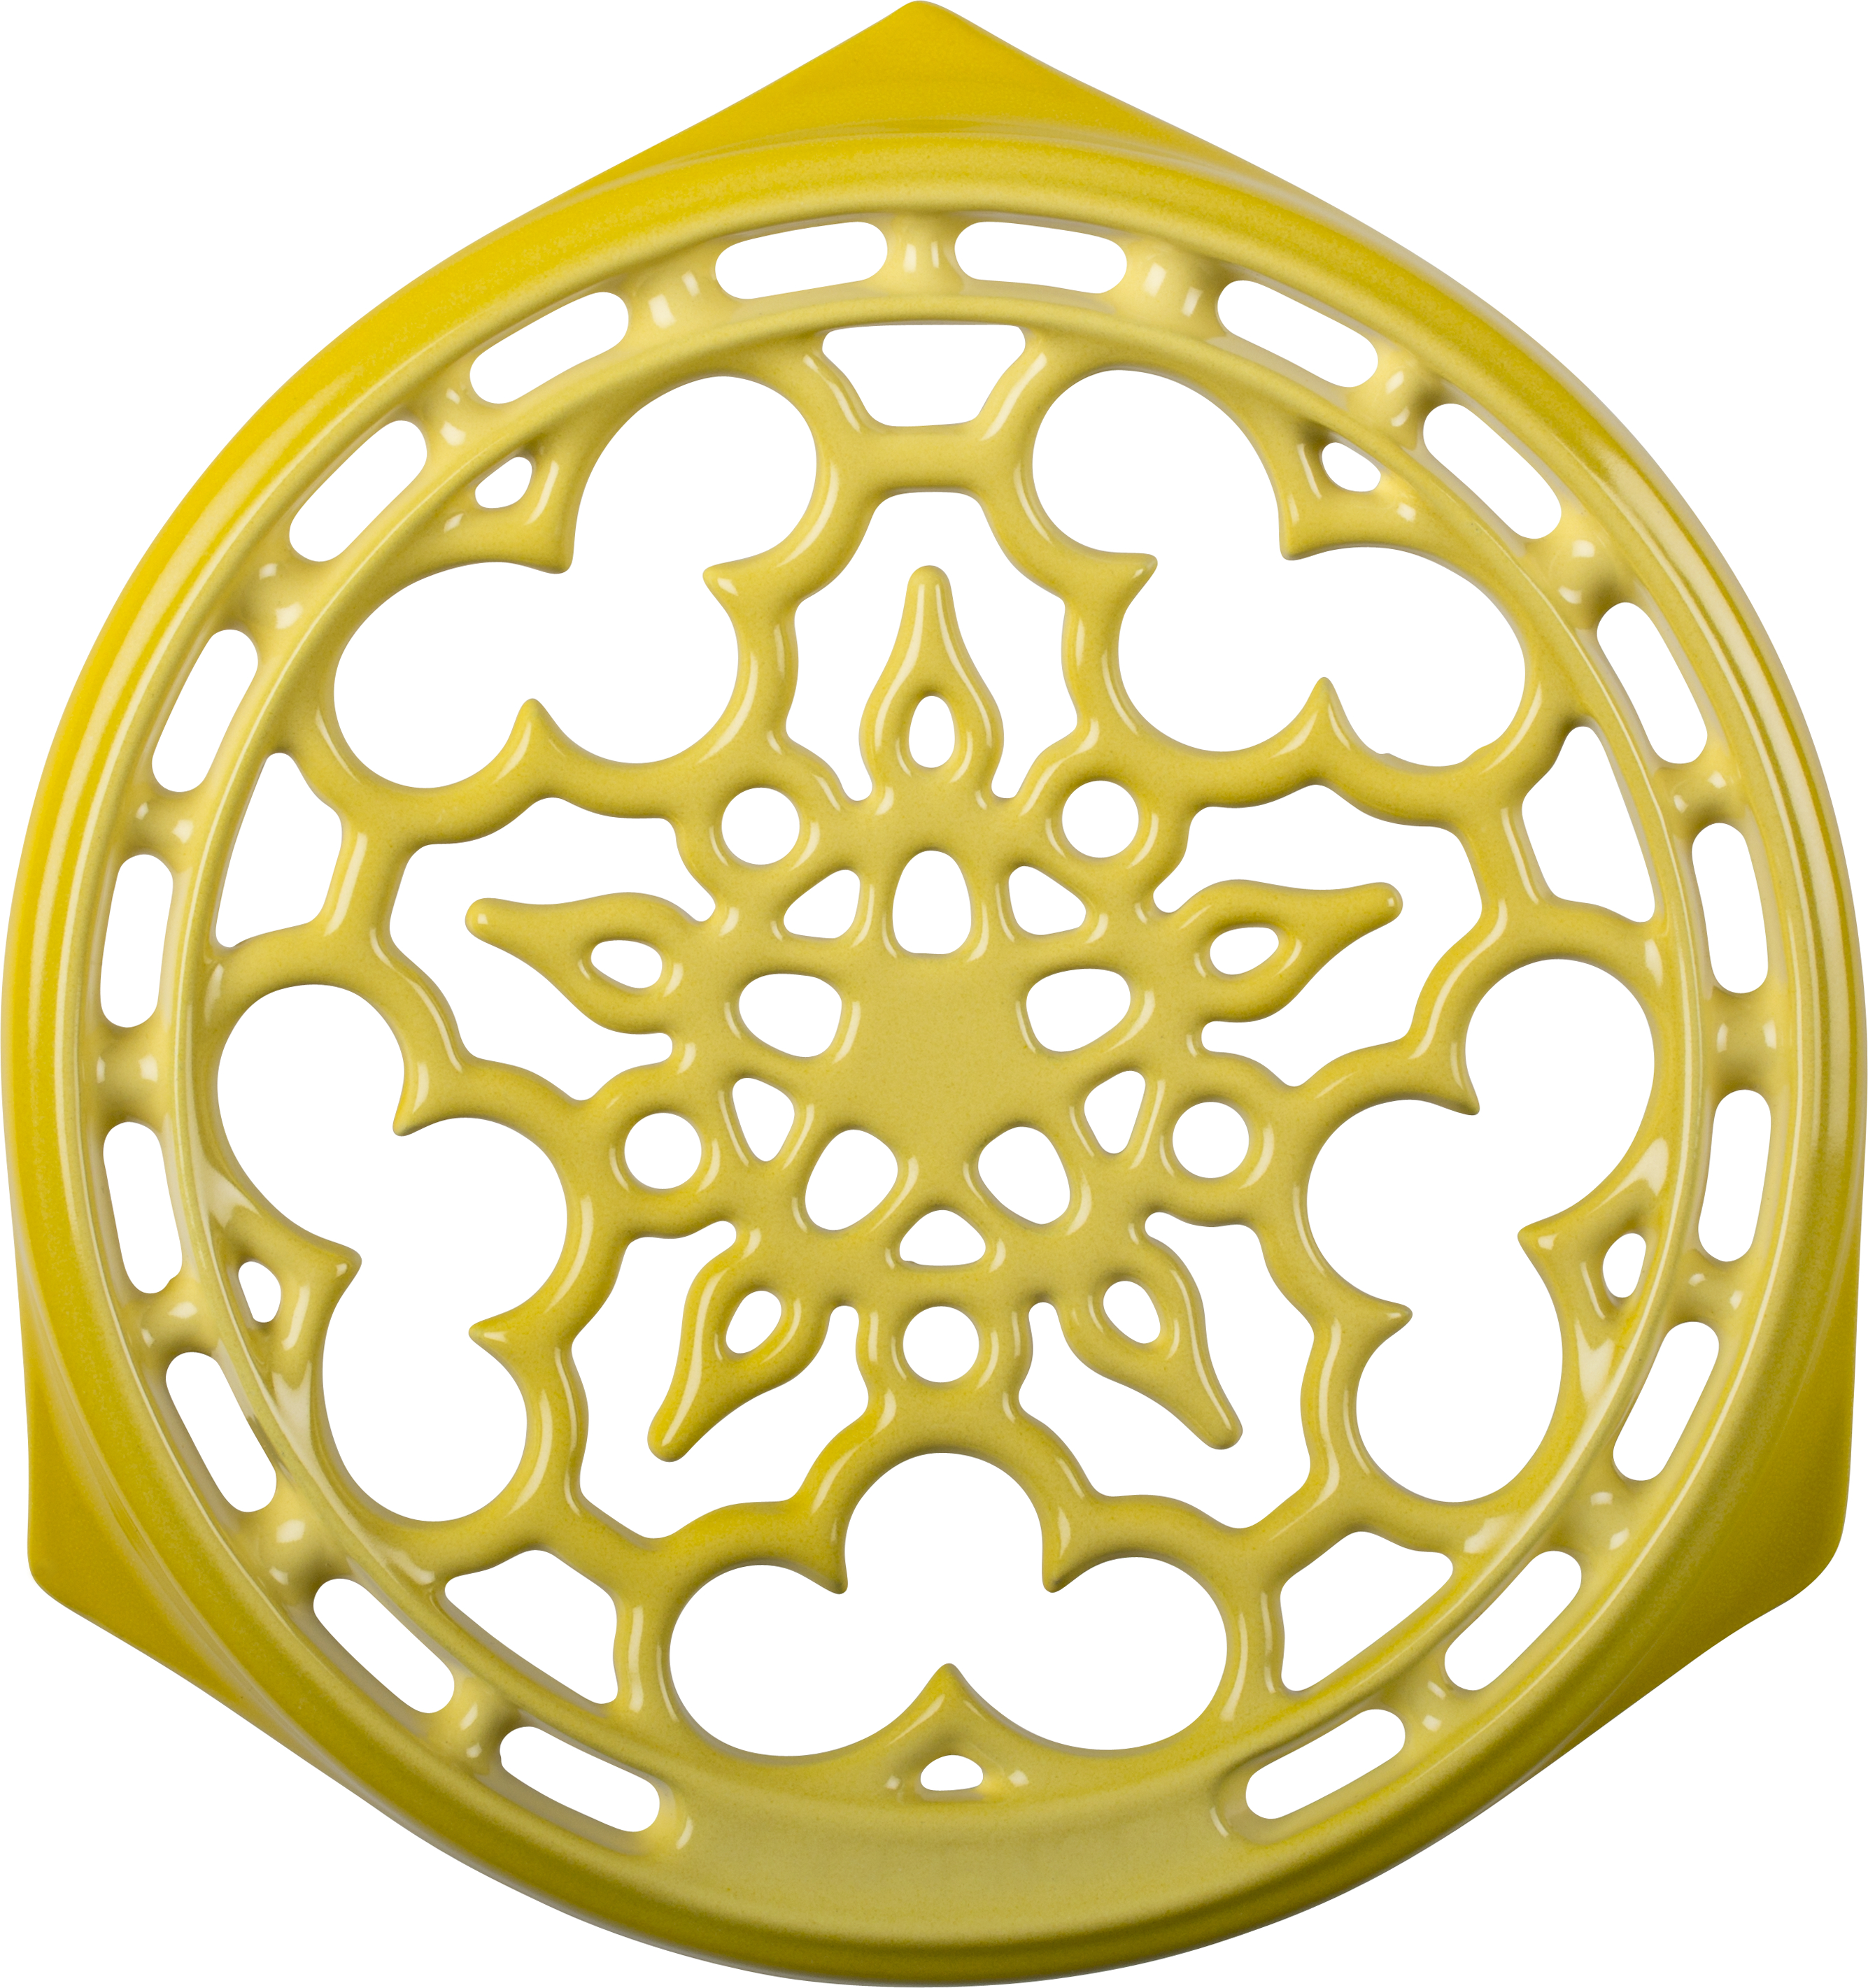 Le Creuset Soleil Yellow Enameled Cast Iron Deluxe Round Trivet, 9 Inch